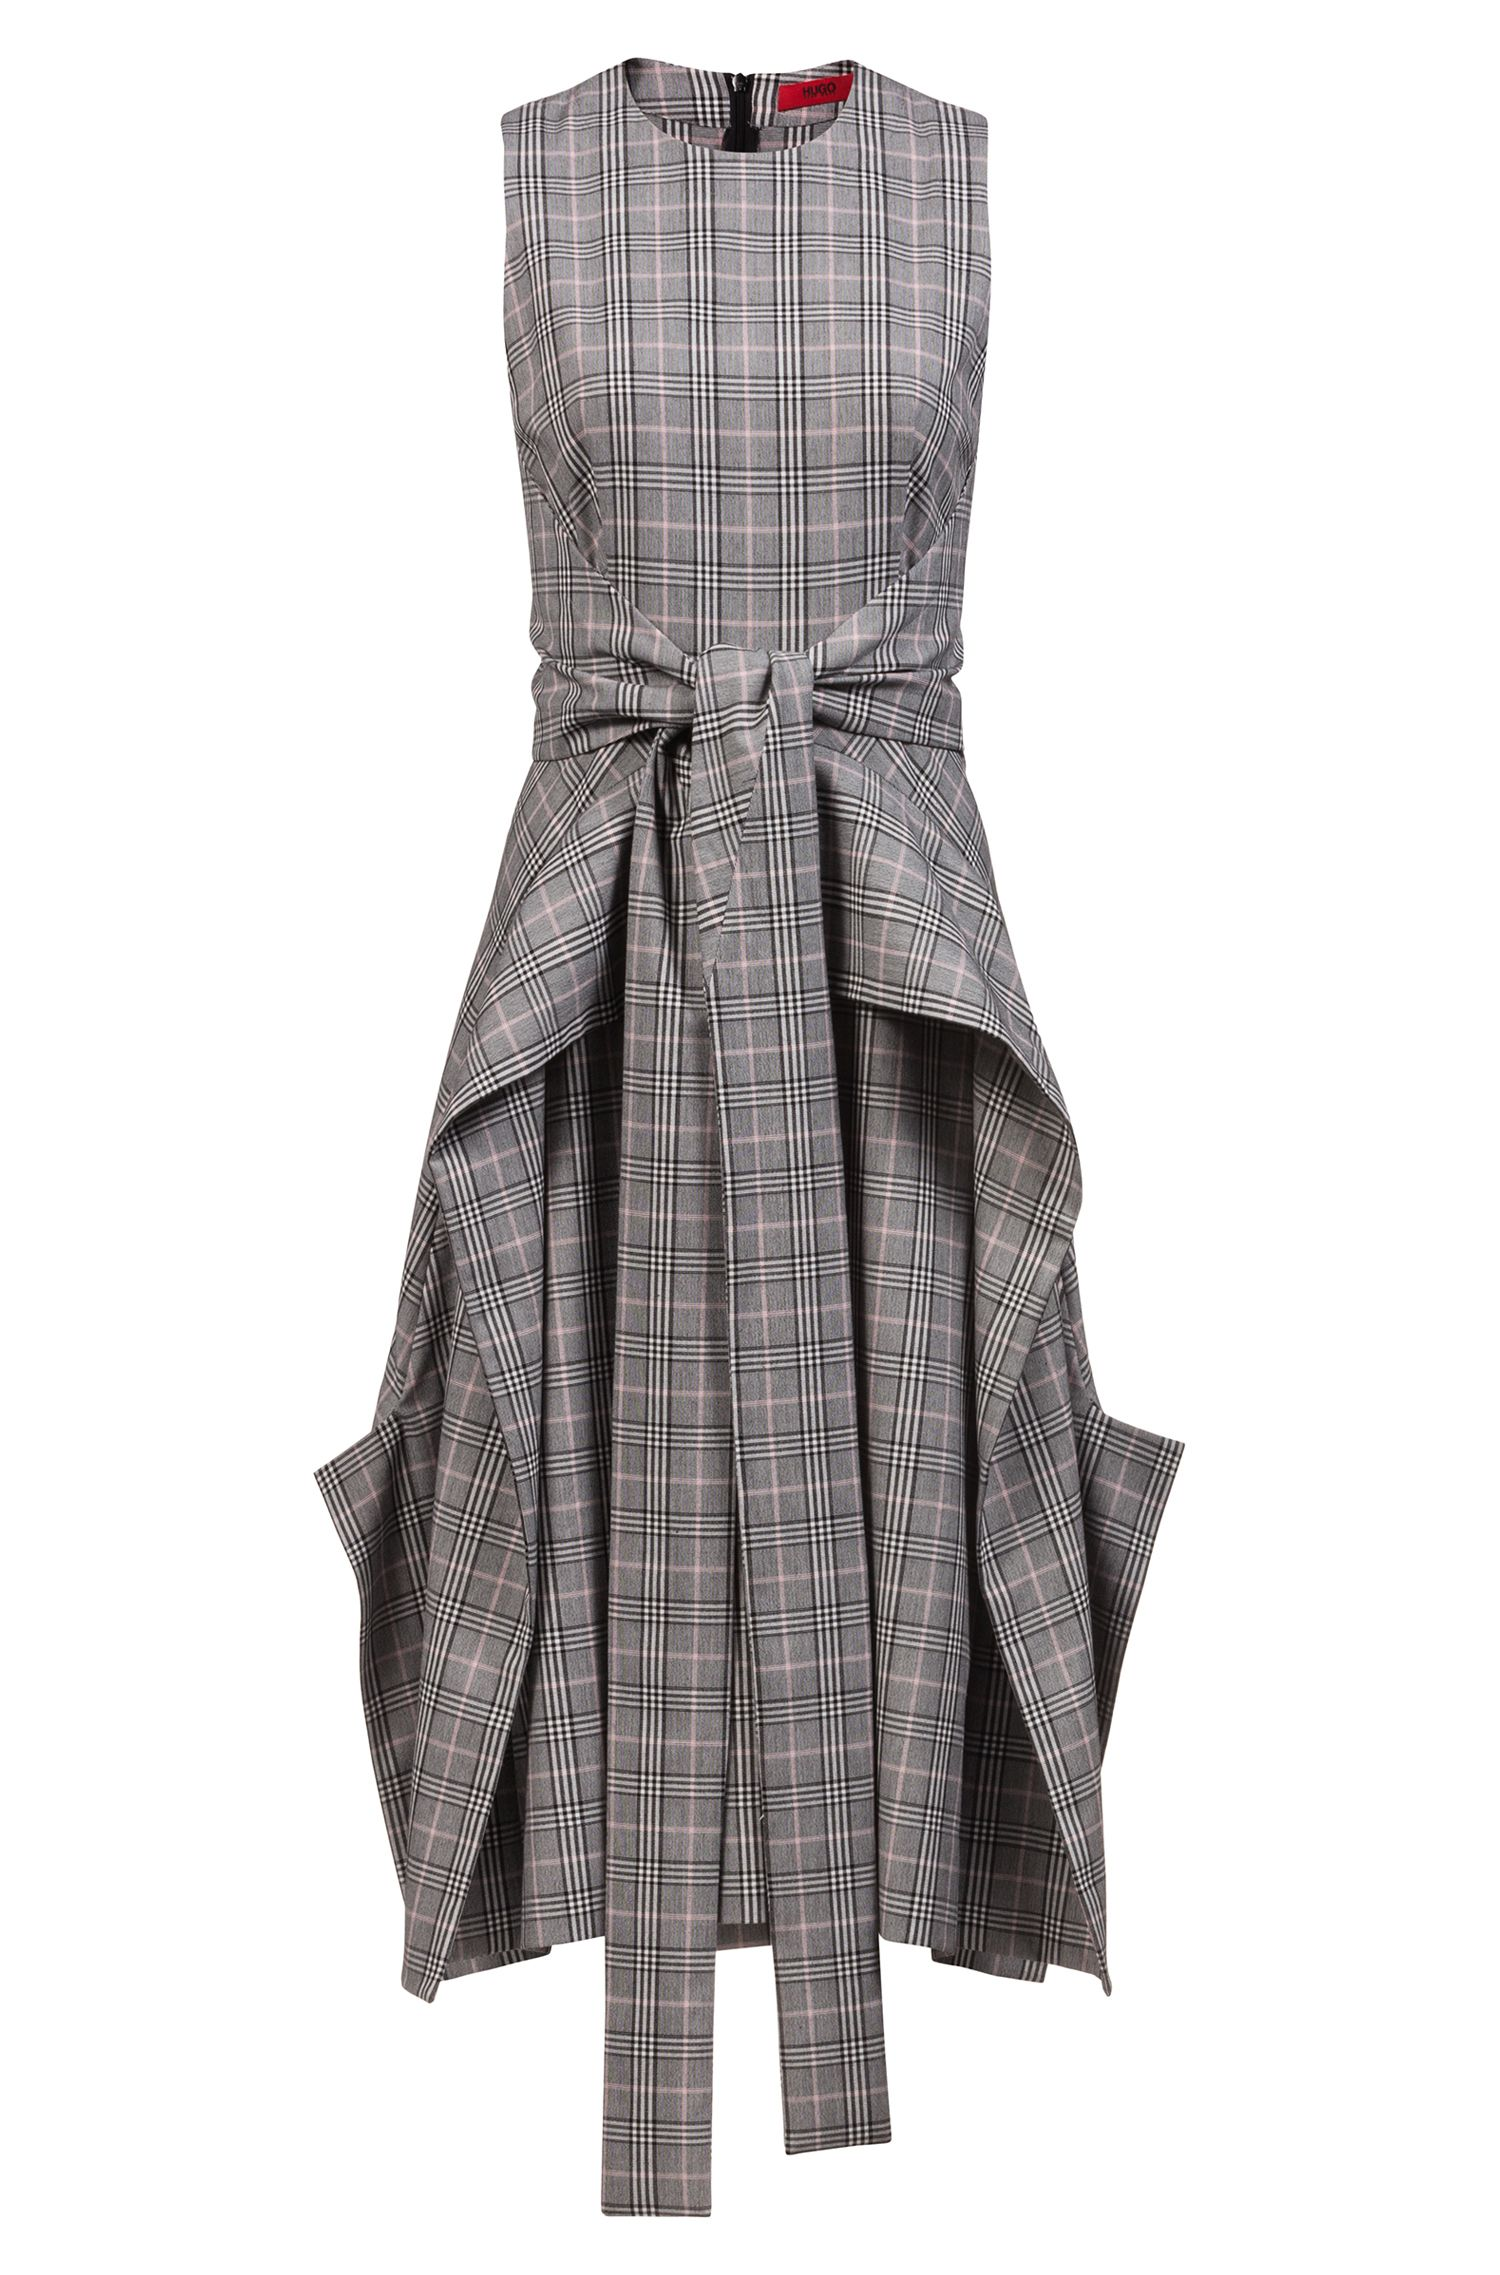 Checked midi dress with waterfall skirt and bow detail, Patterned